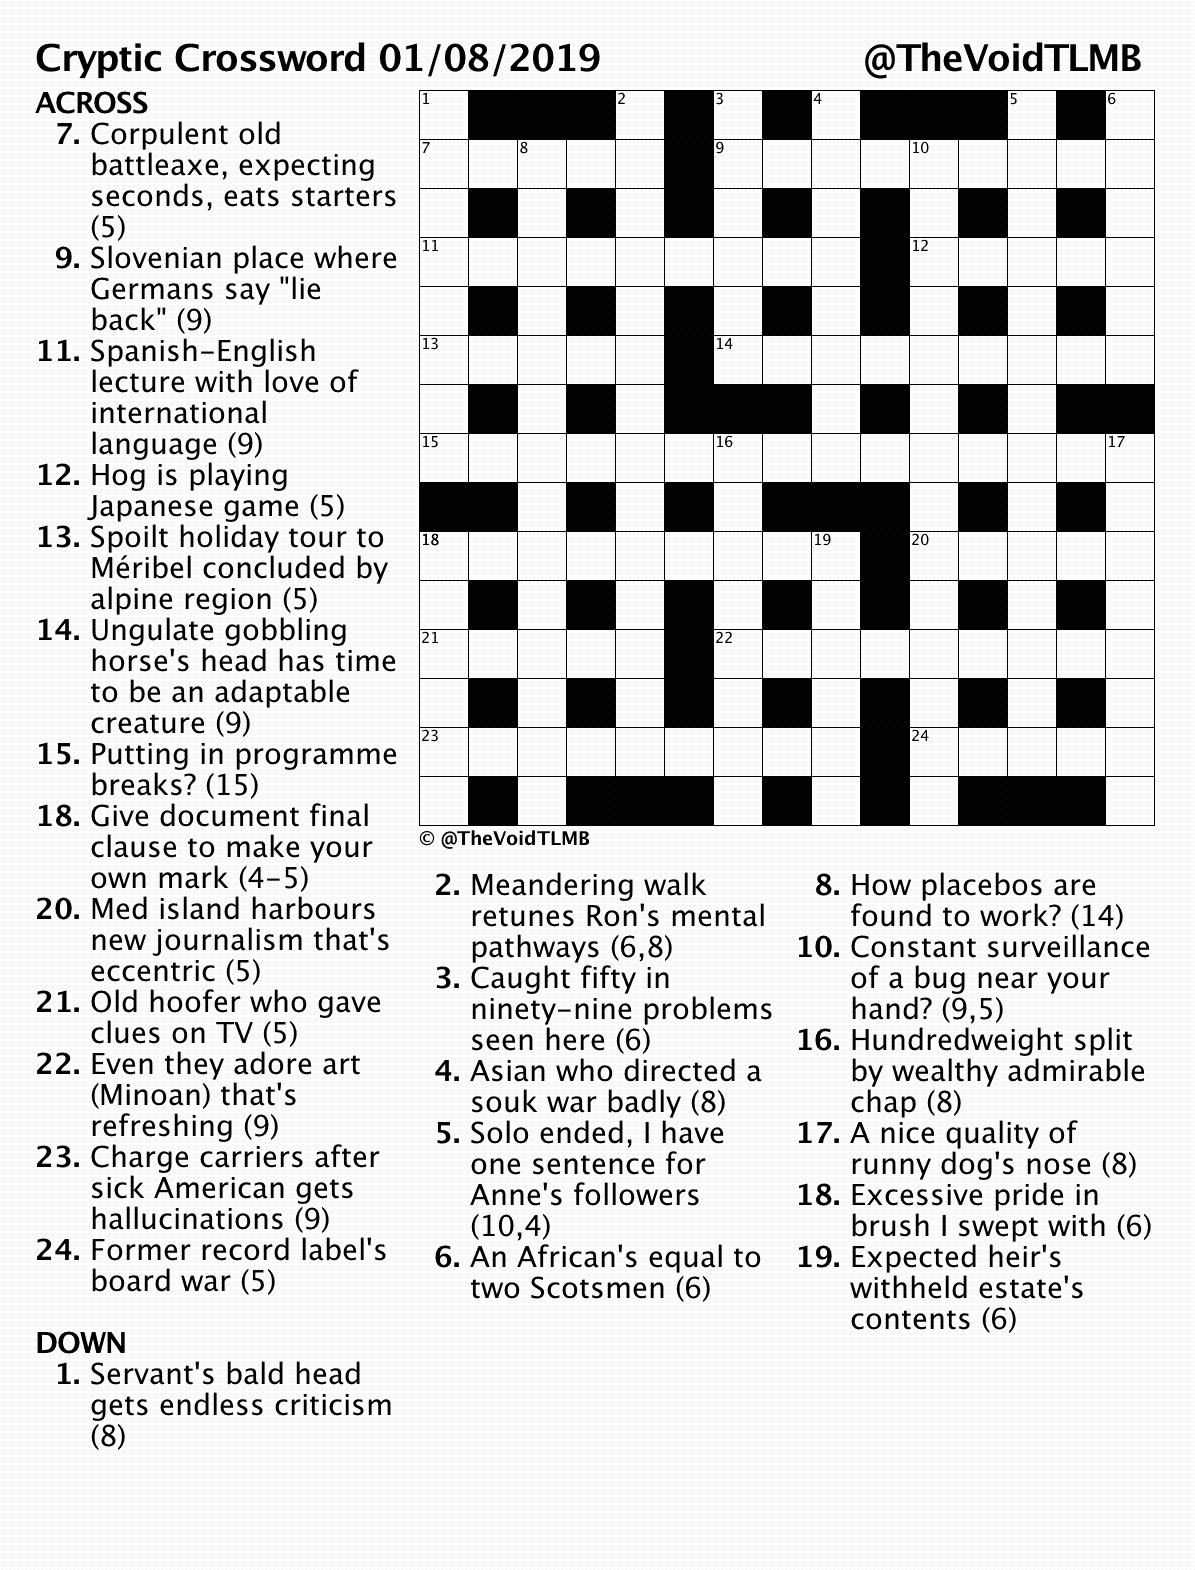 photo about Printable Cryptic Crosswords named TLMB TLMB